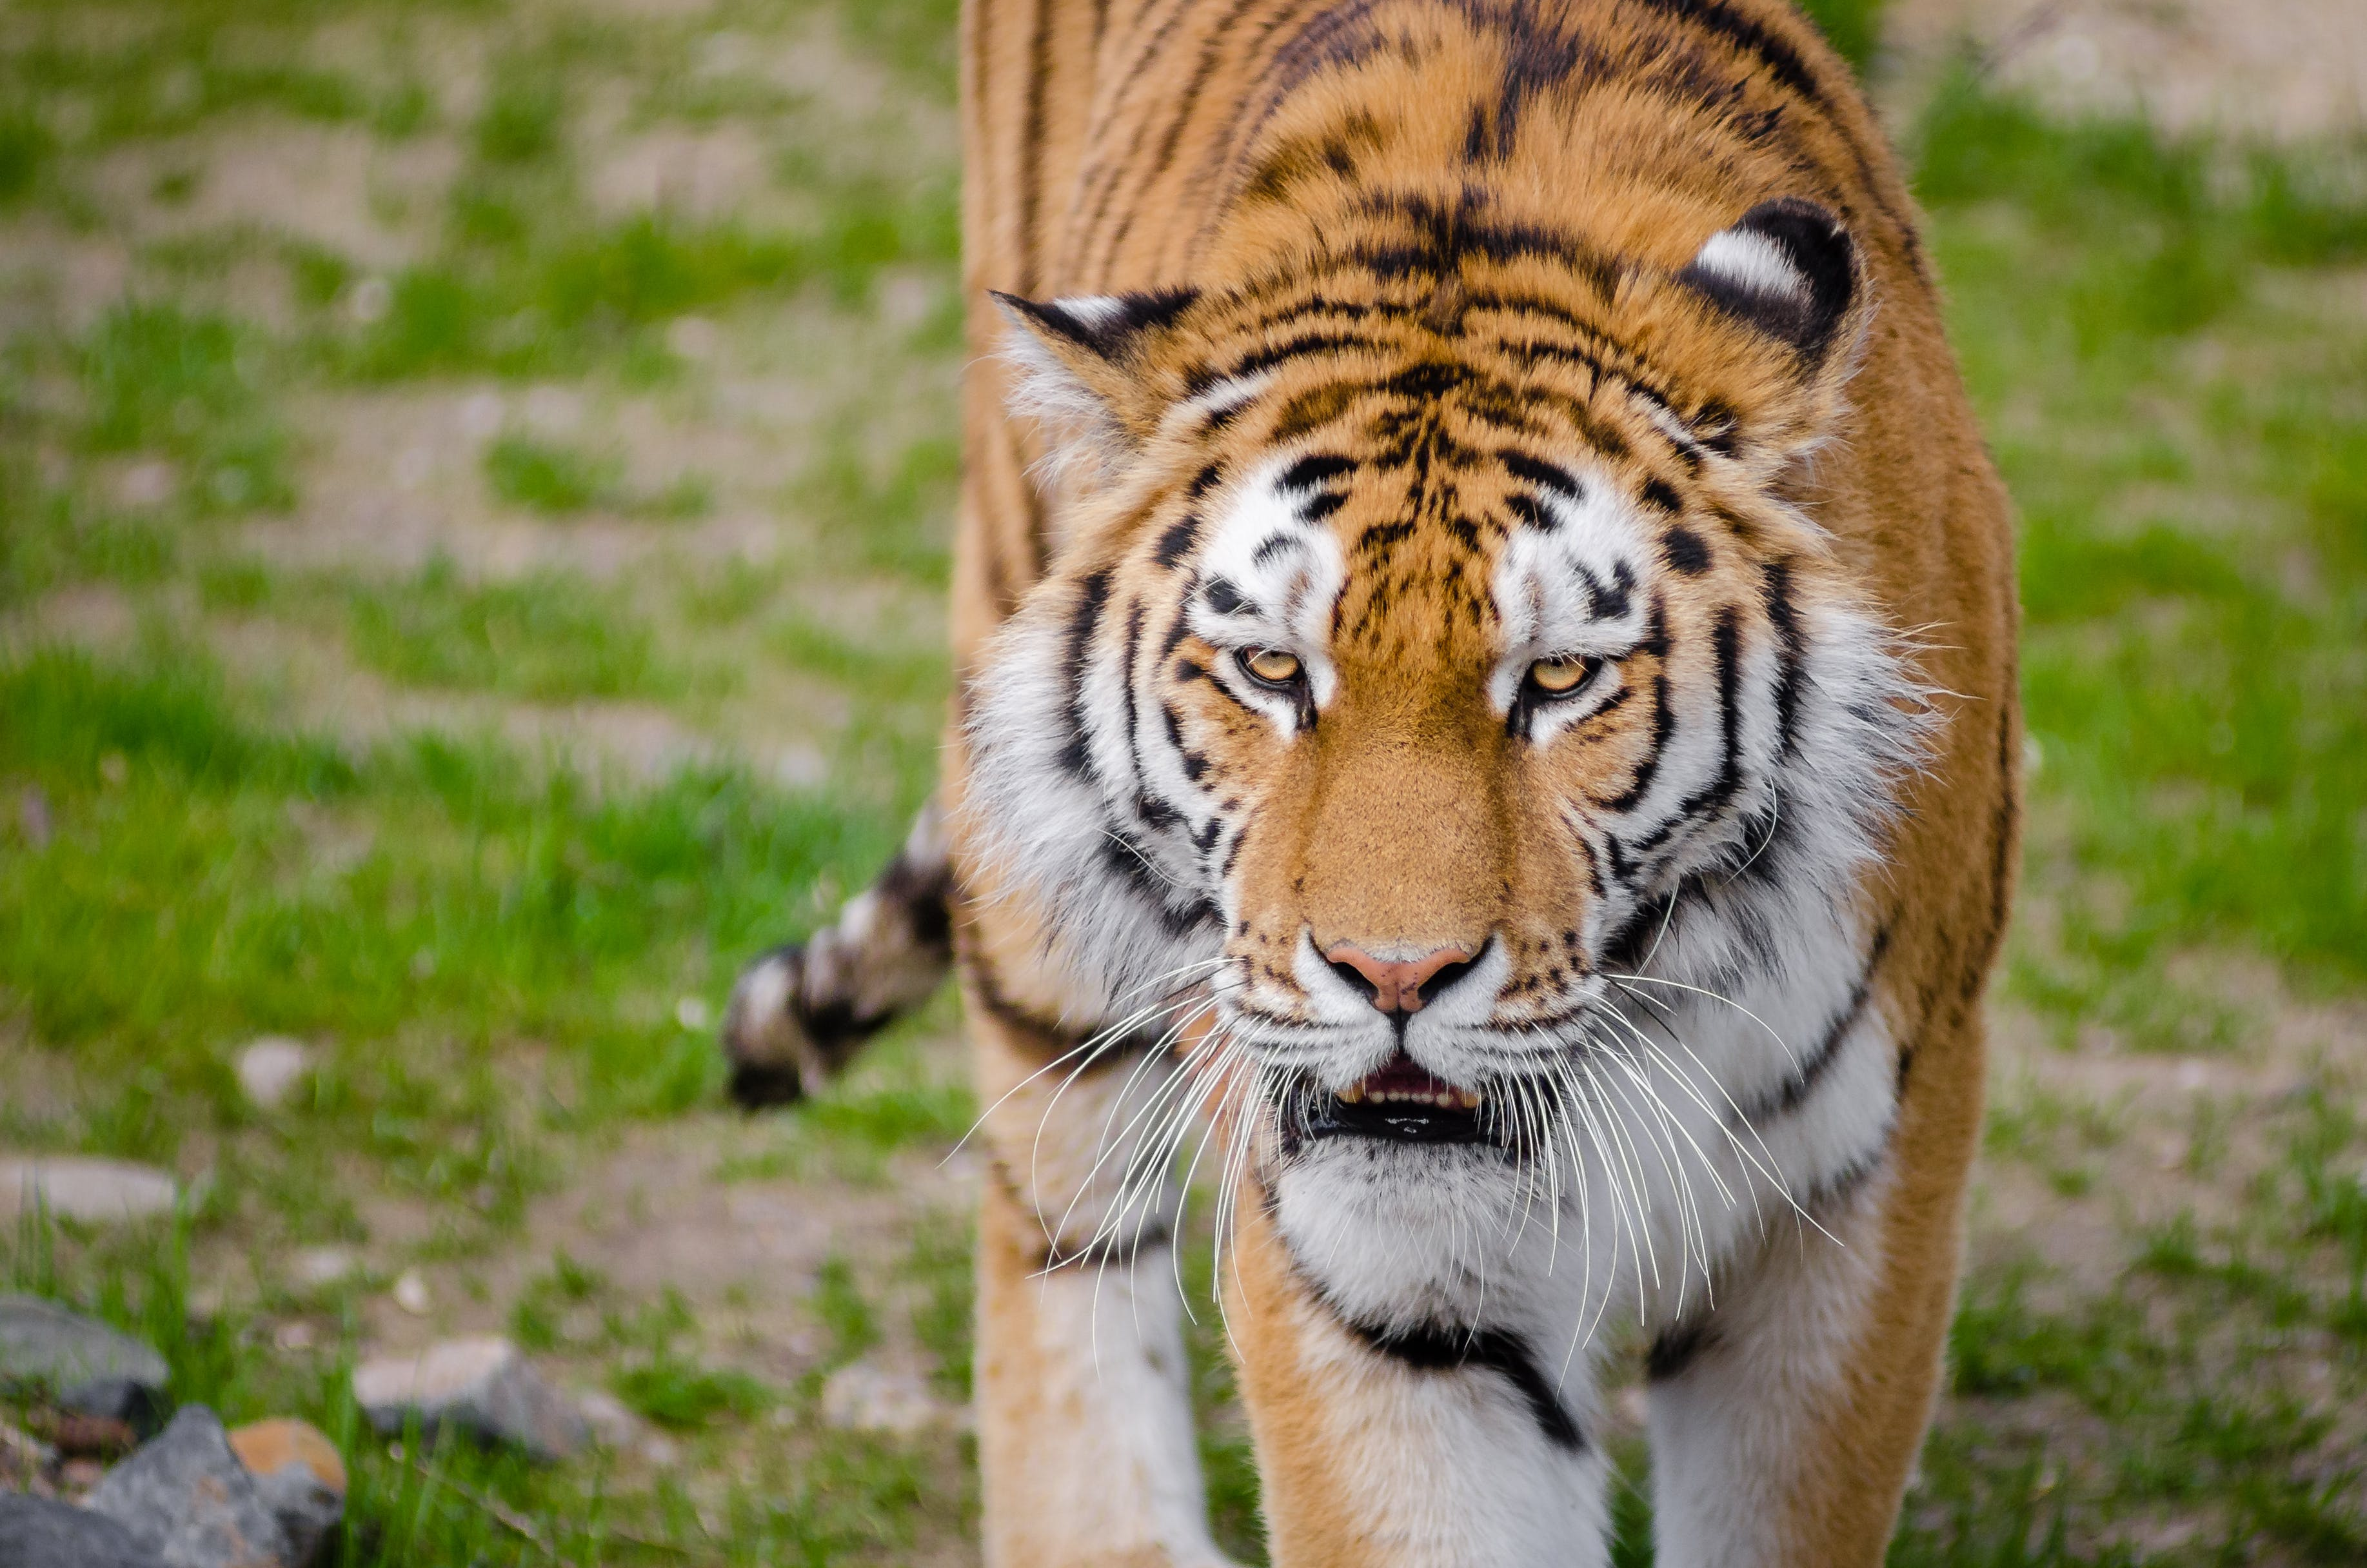 Tiger on Green Grass during Daytime